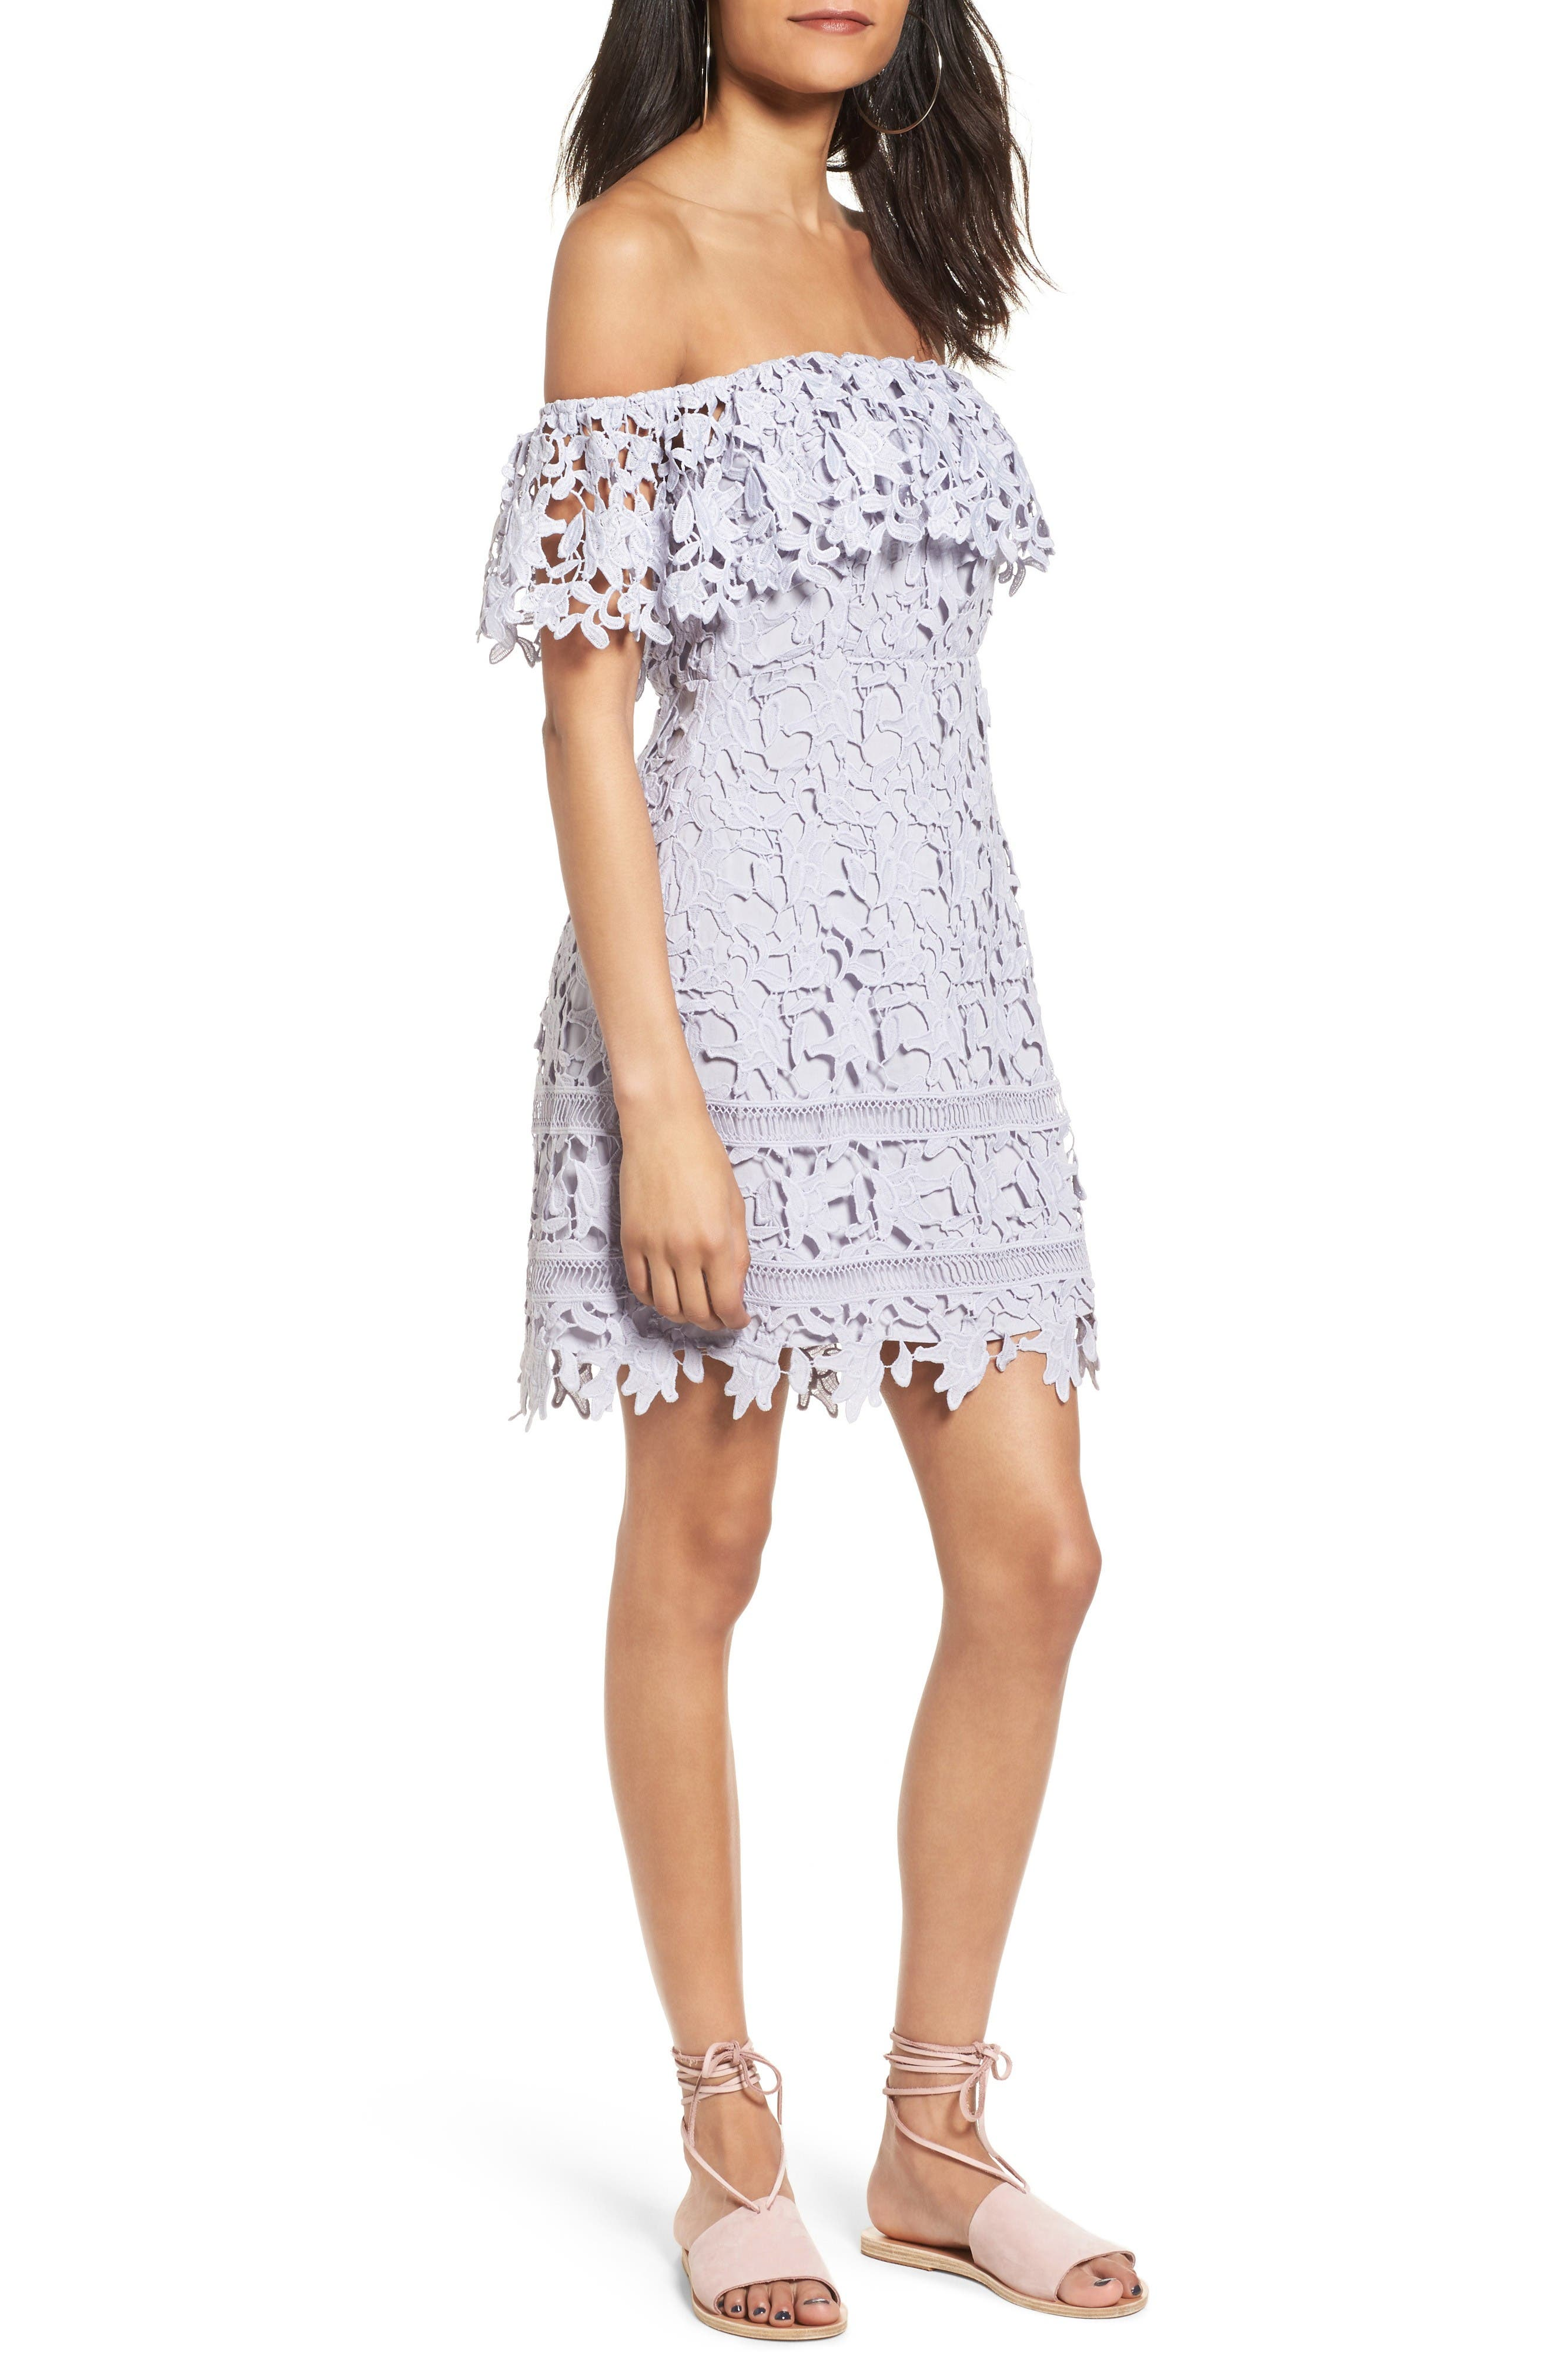 Main Image - ASTR the Label Off the Shoulder Lace Minidress